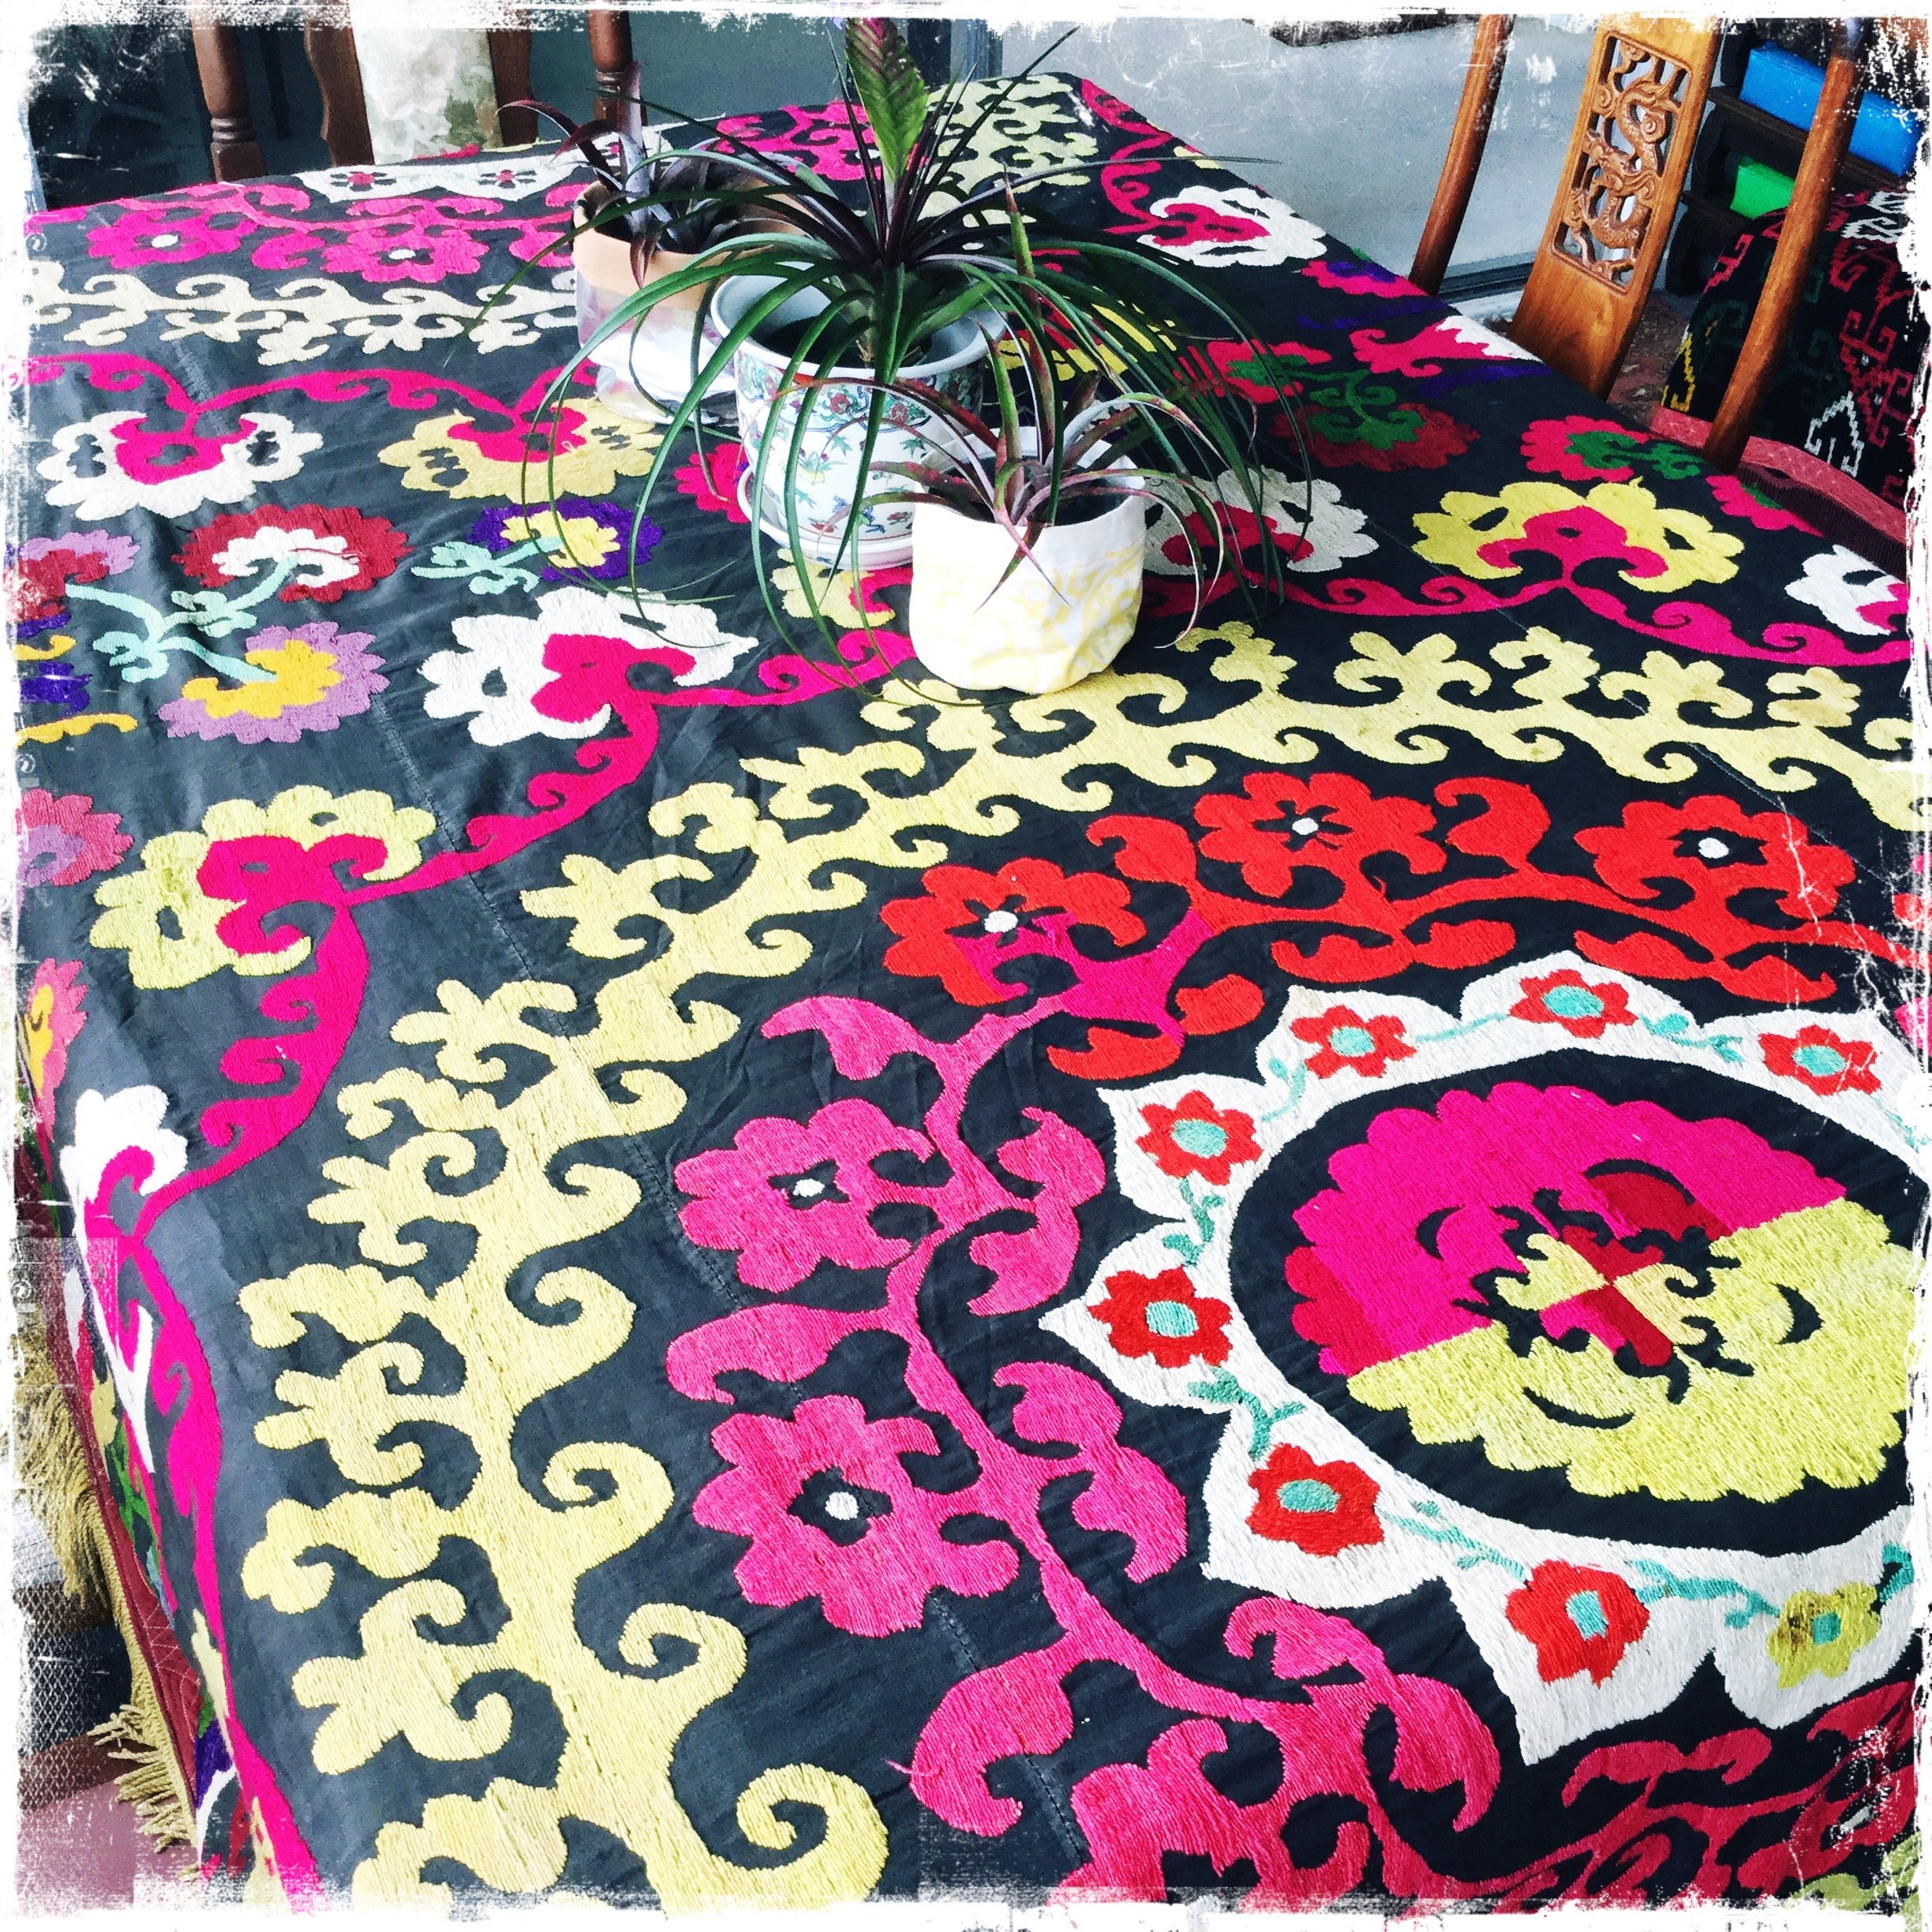 Charmant Amazing Vintage Suzani Bedspread, Antique Silk Uzbek Tablecloths, Suzani  Embroidery   Honorooroo Lifestyle